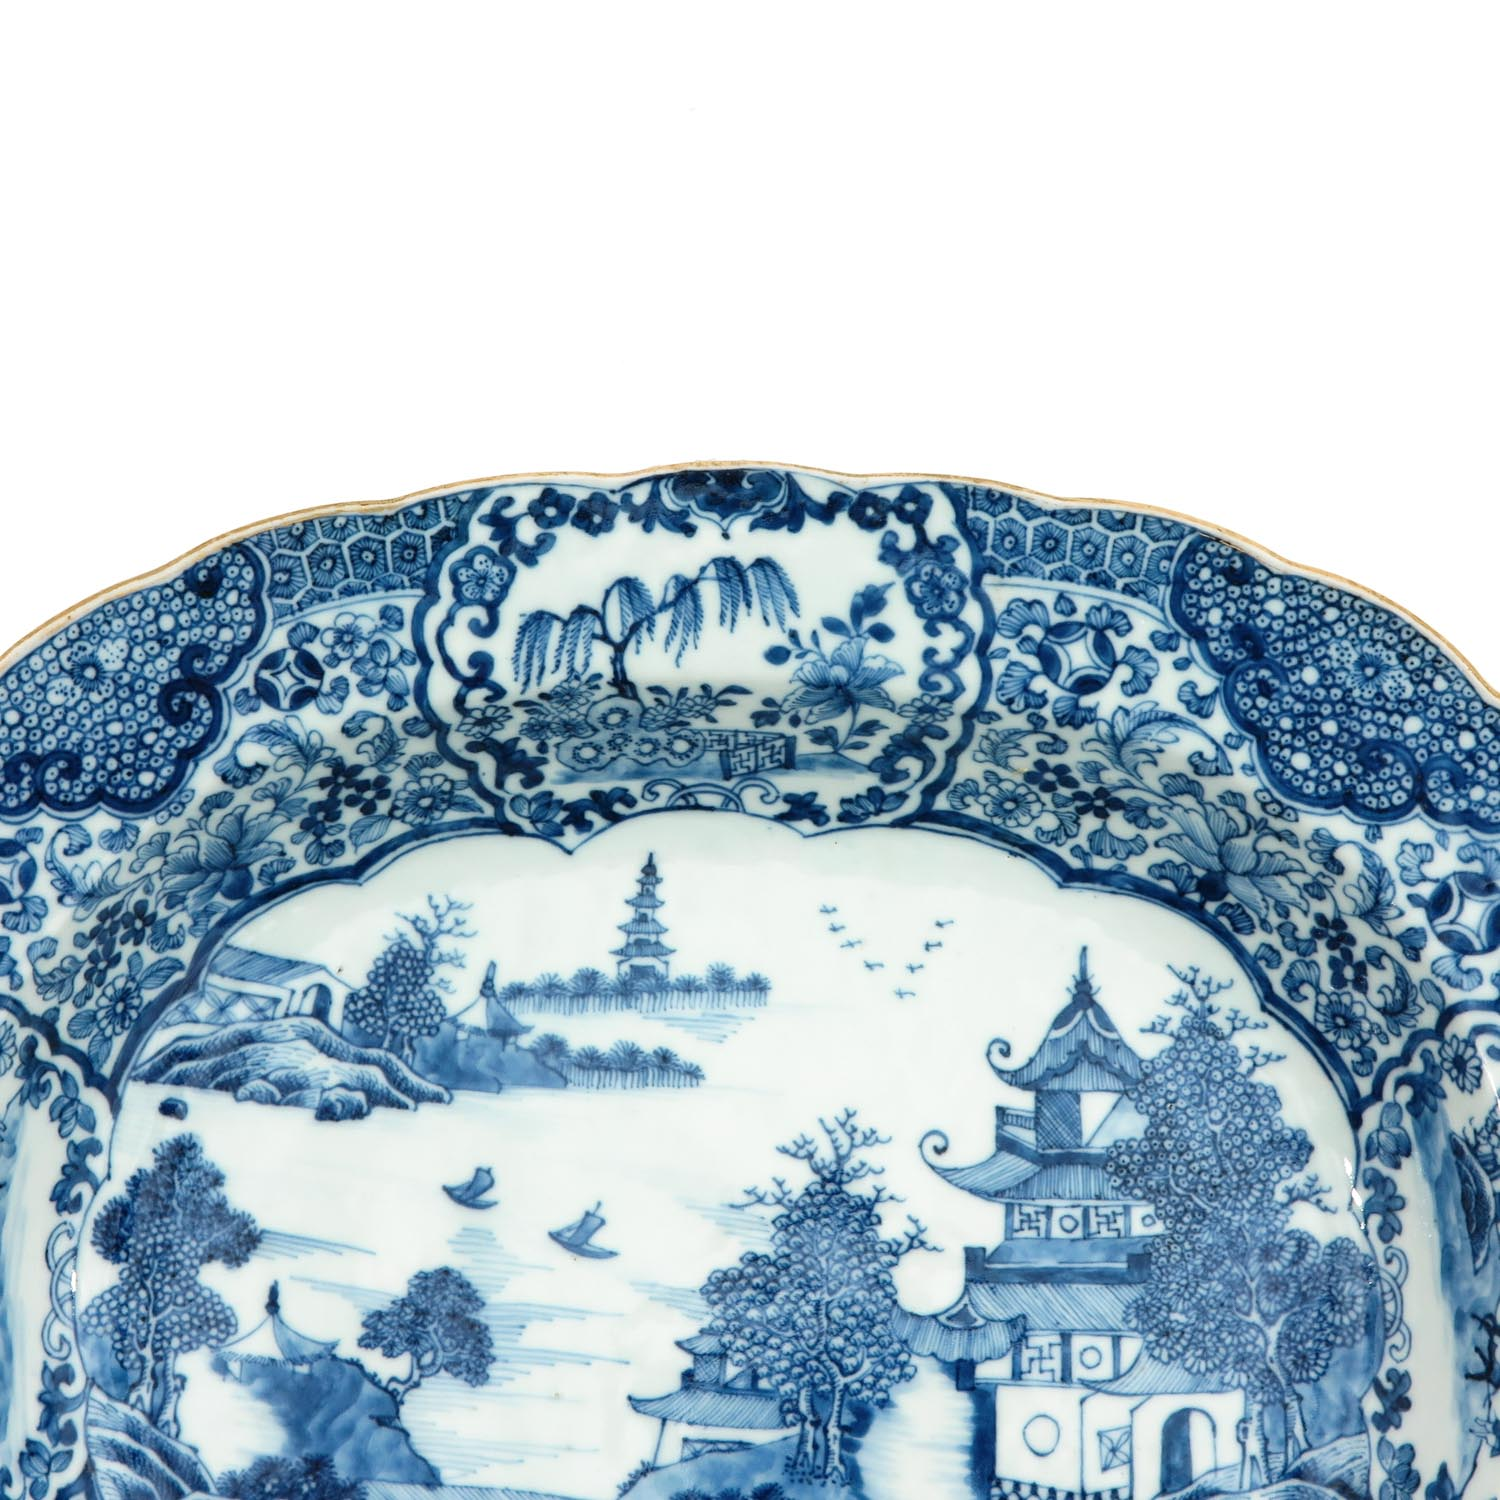 A Blue and White Serving Tray - Image 3 of 7